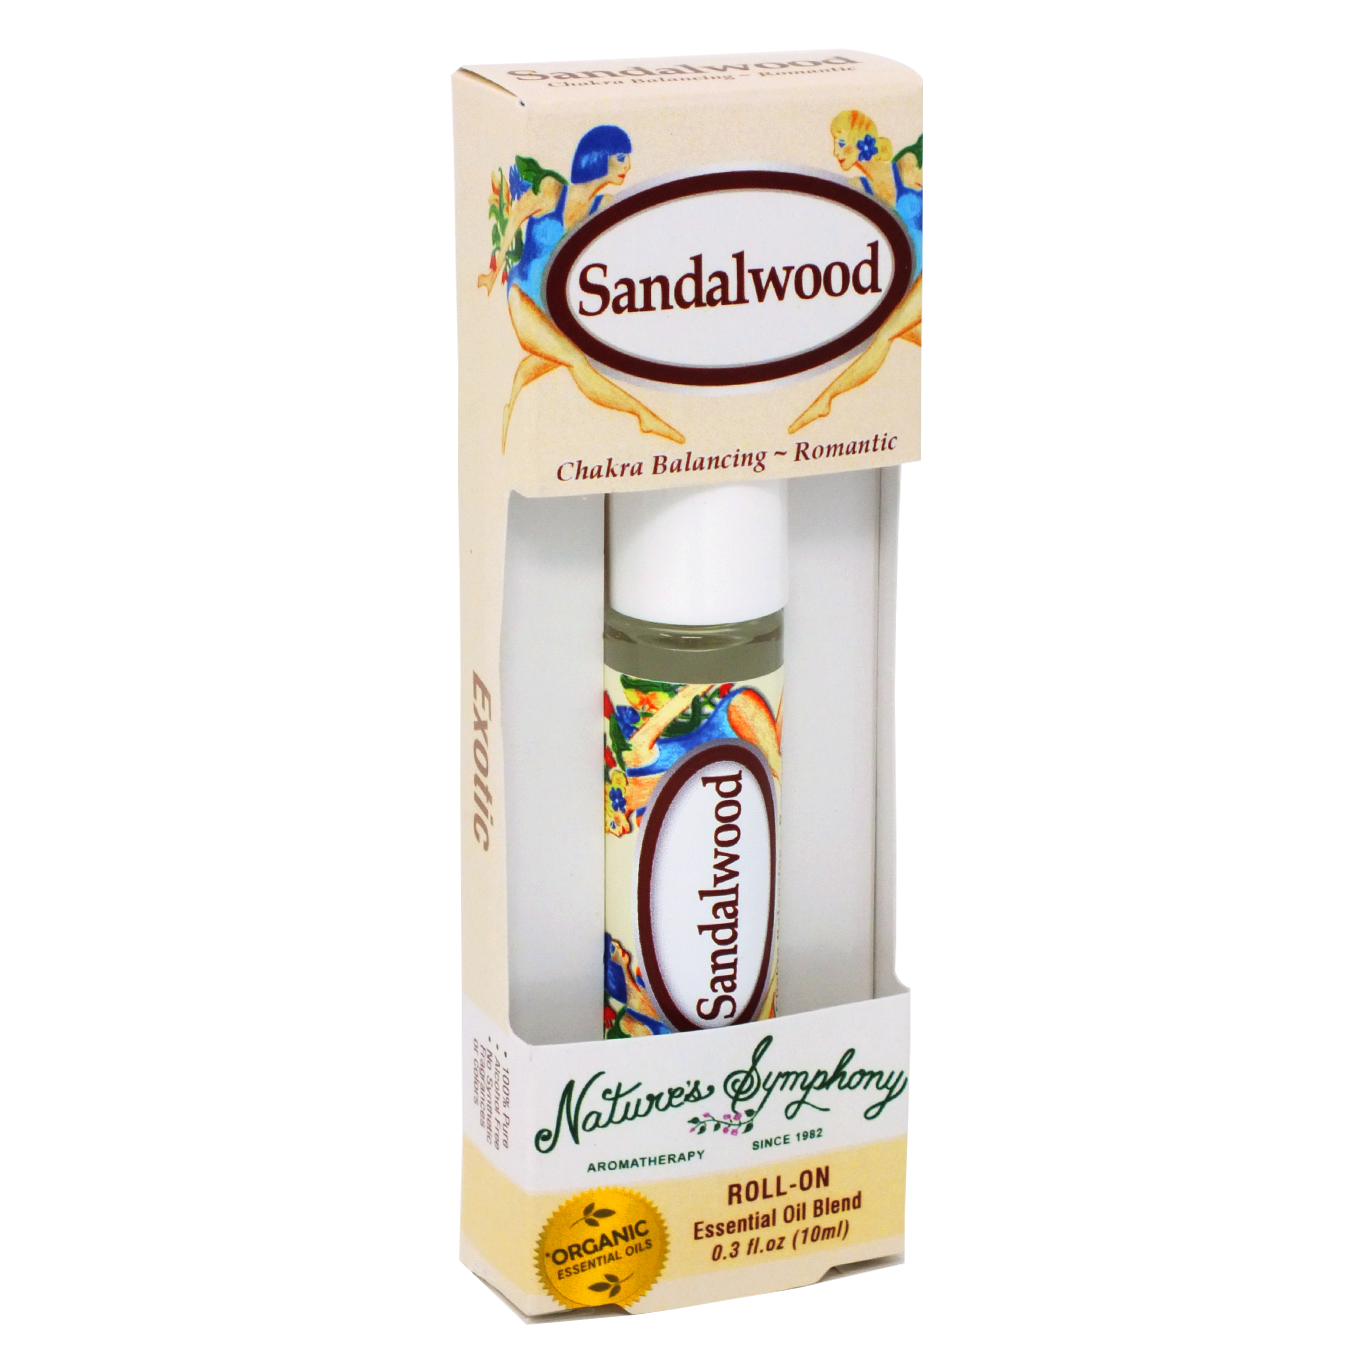 Sandalwood, Roller Ball, Exotic Organic/Wildcrafted Fragrance - 10ml